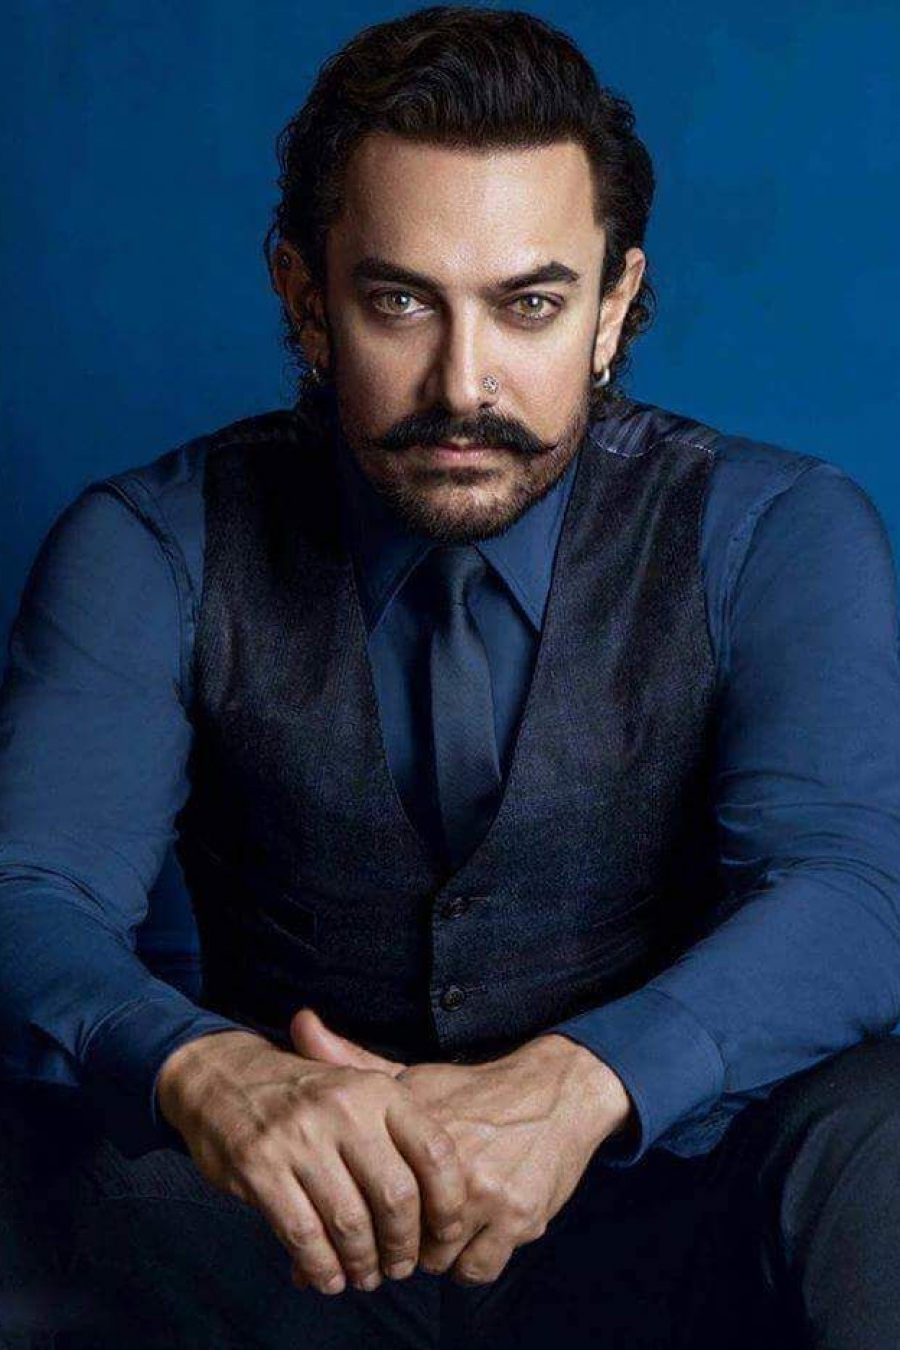 Aamir Khan Turns Life Into A Story, One Film At A Time